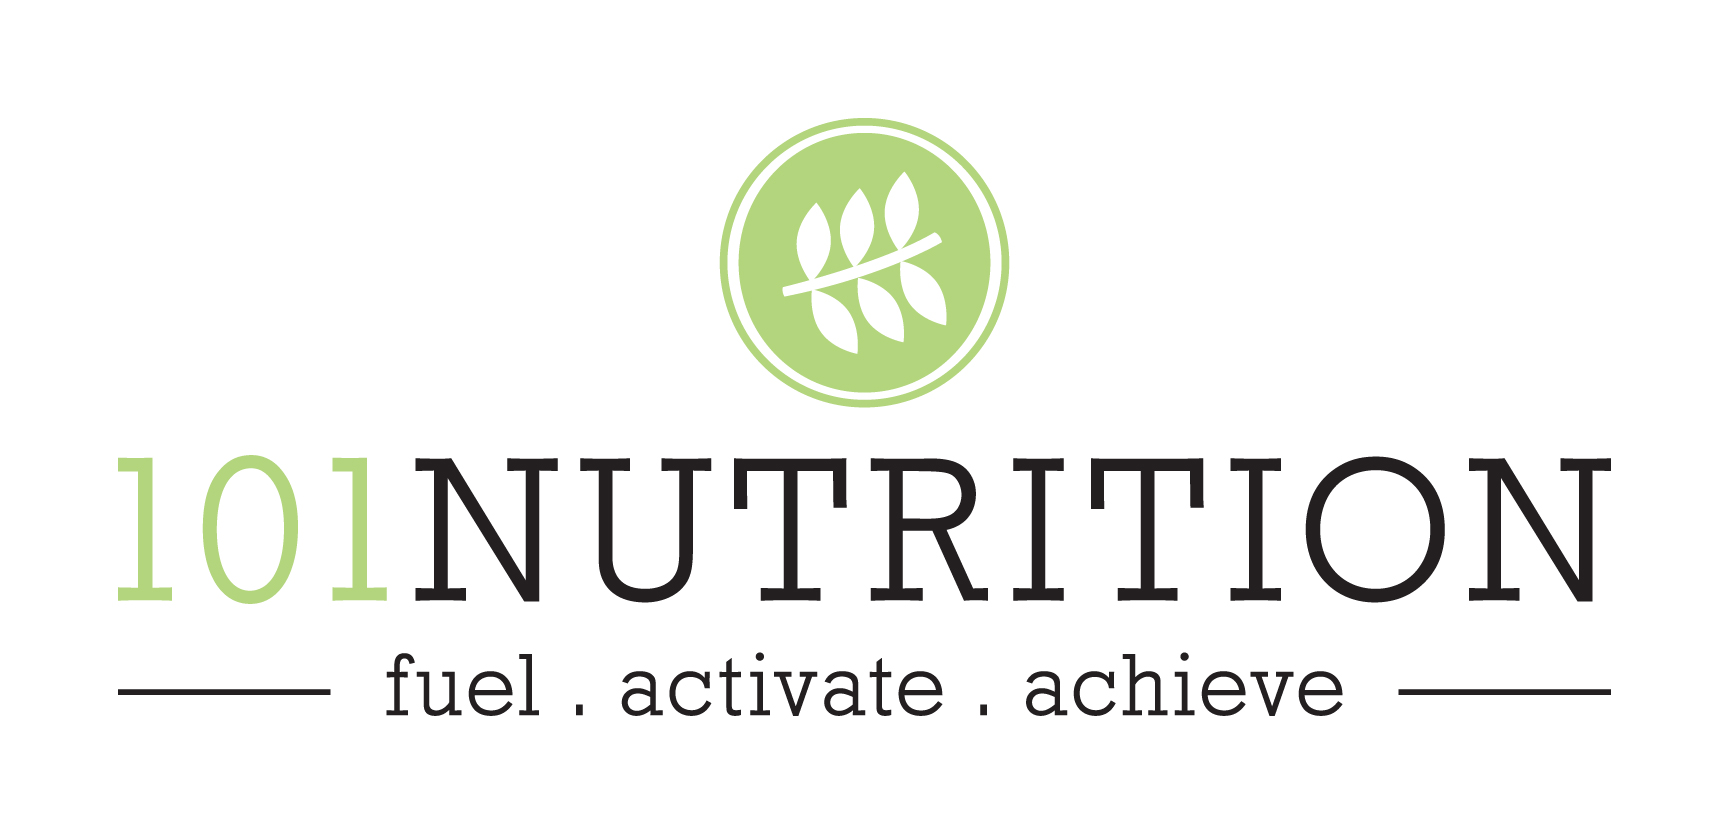 101 Nutrition